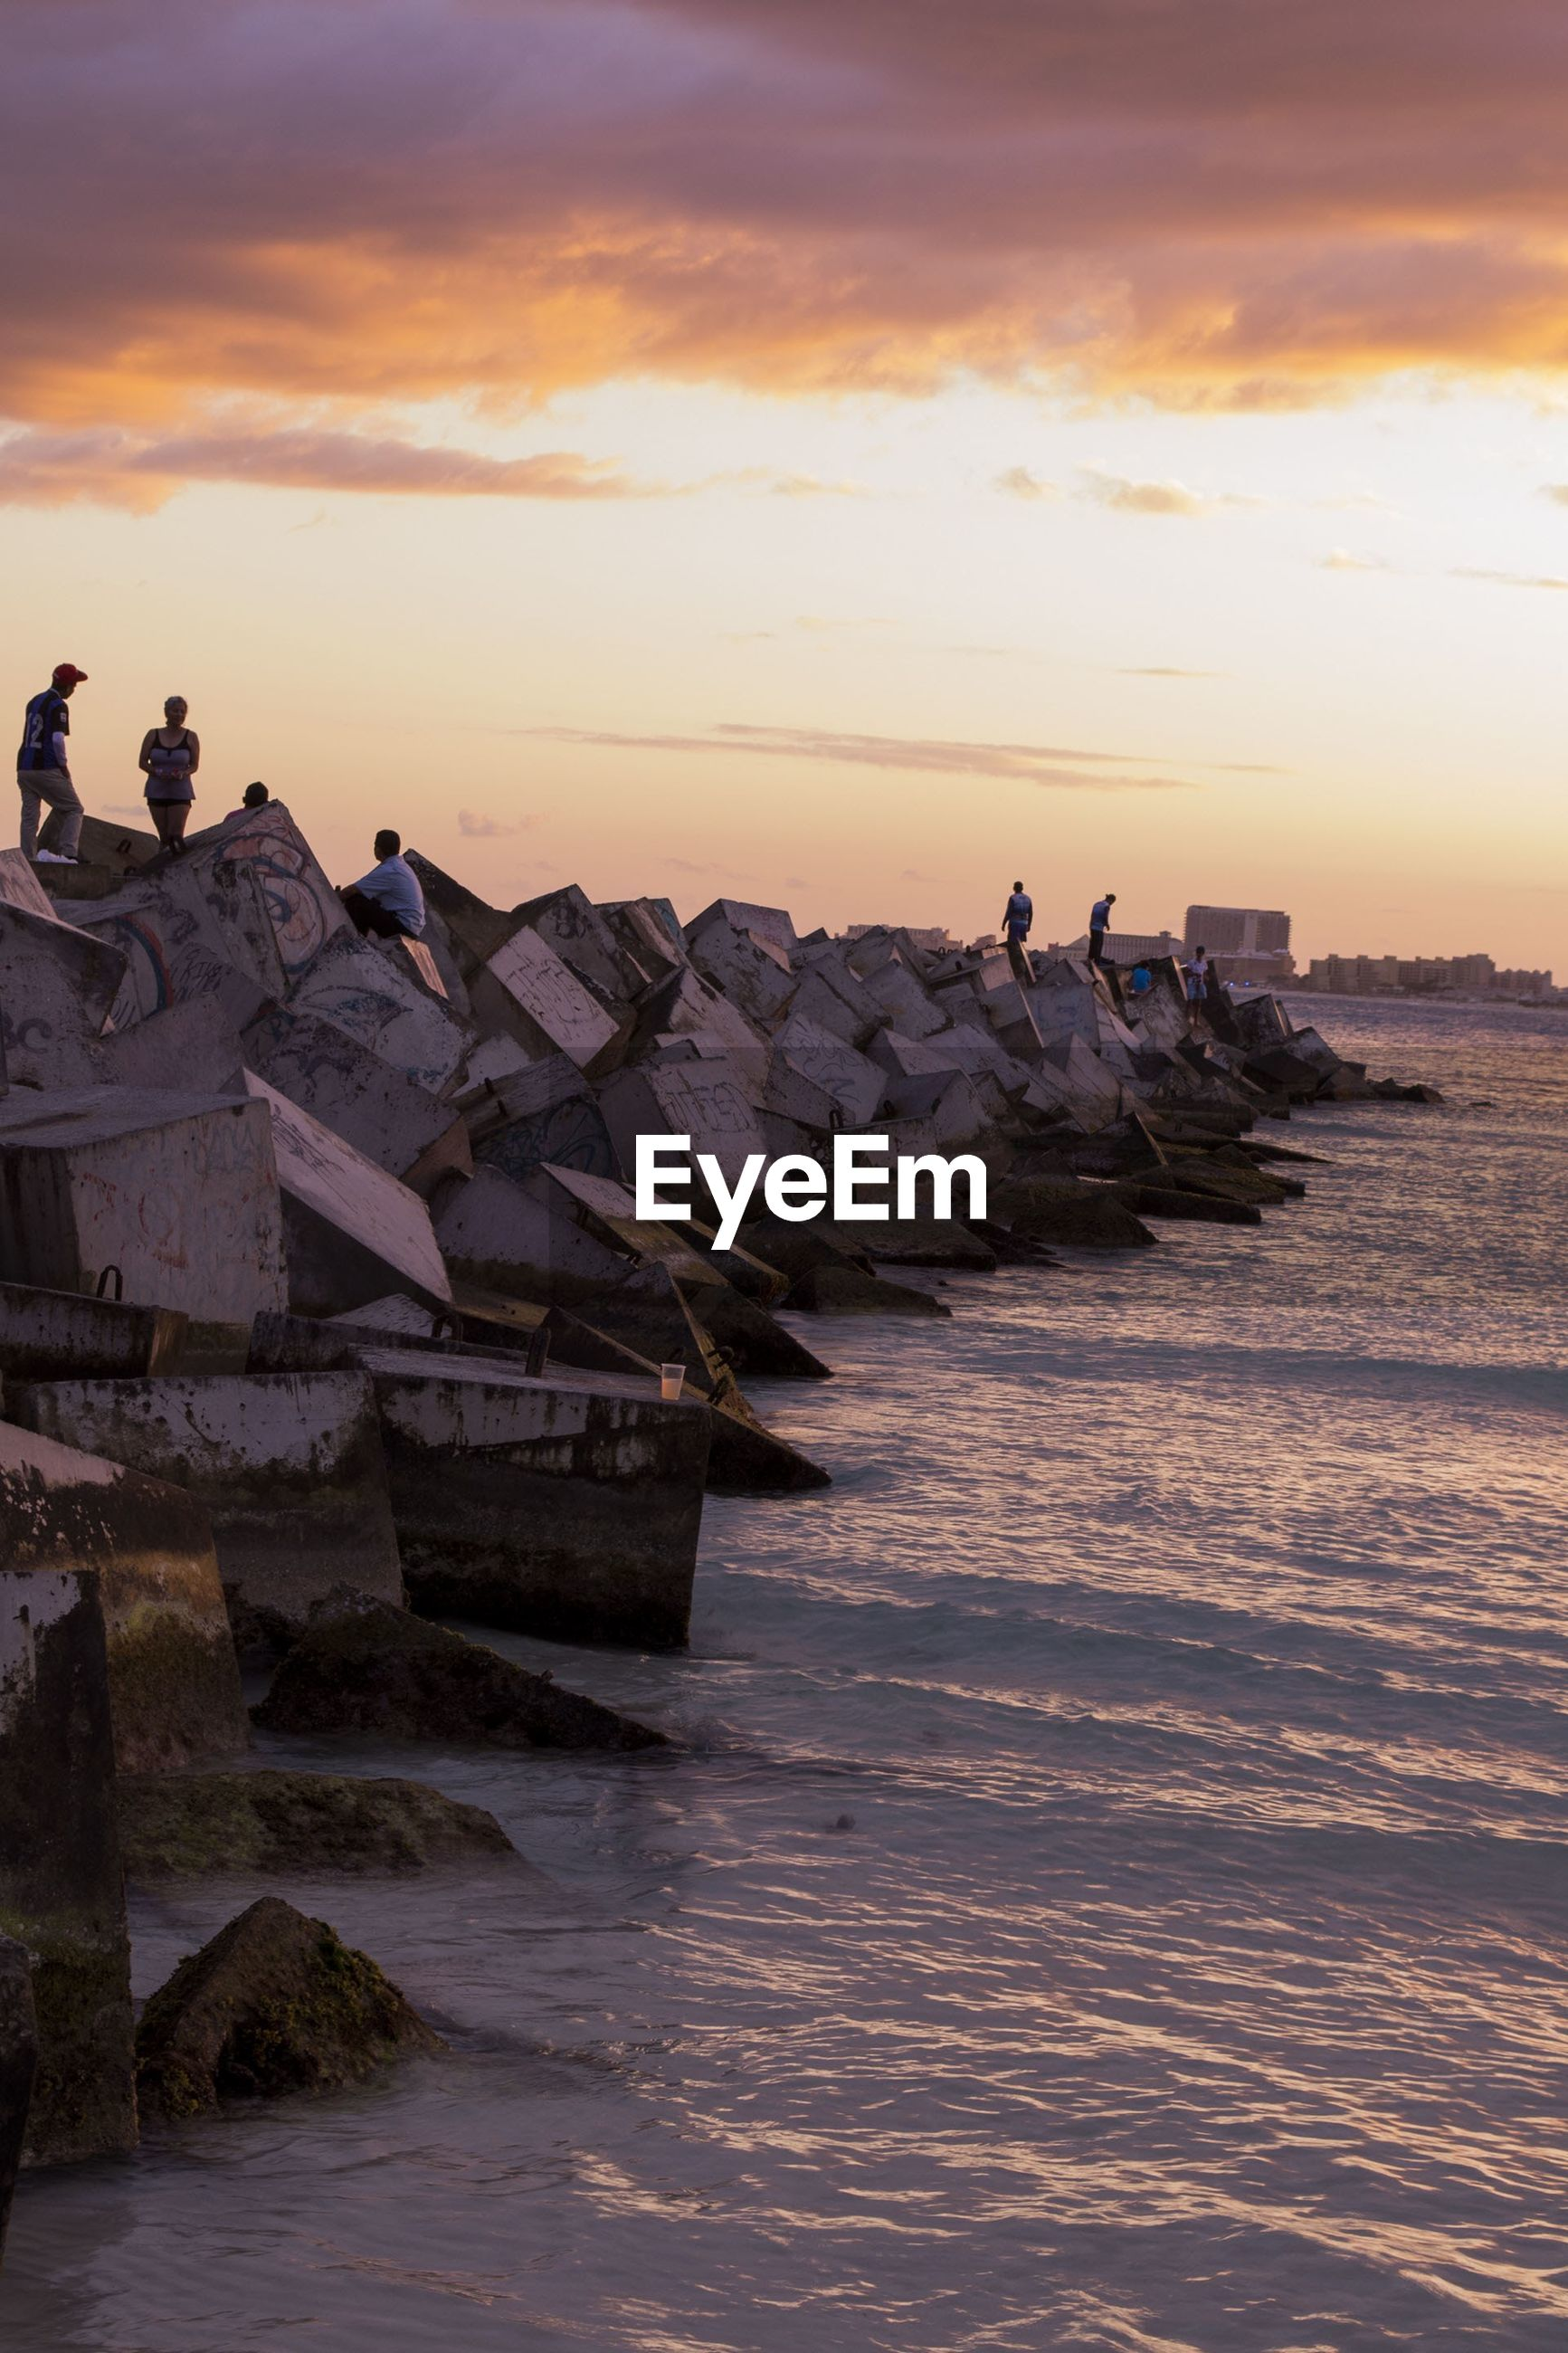 People on rocks by sea against sky during sunset